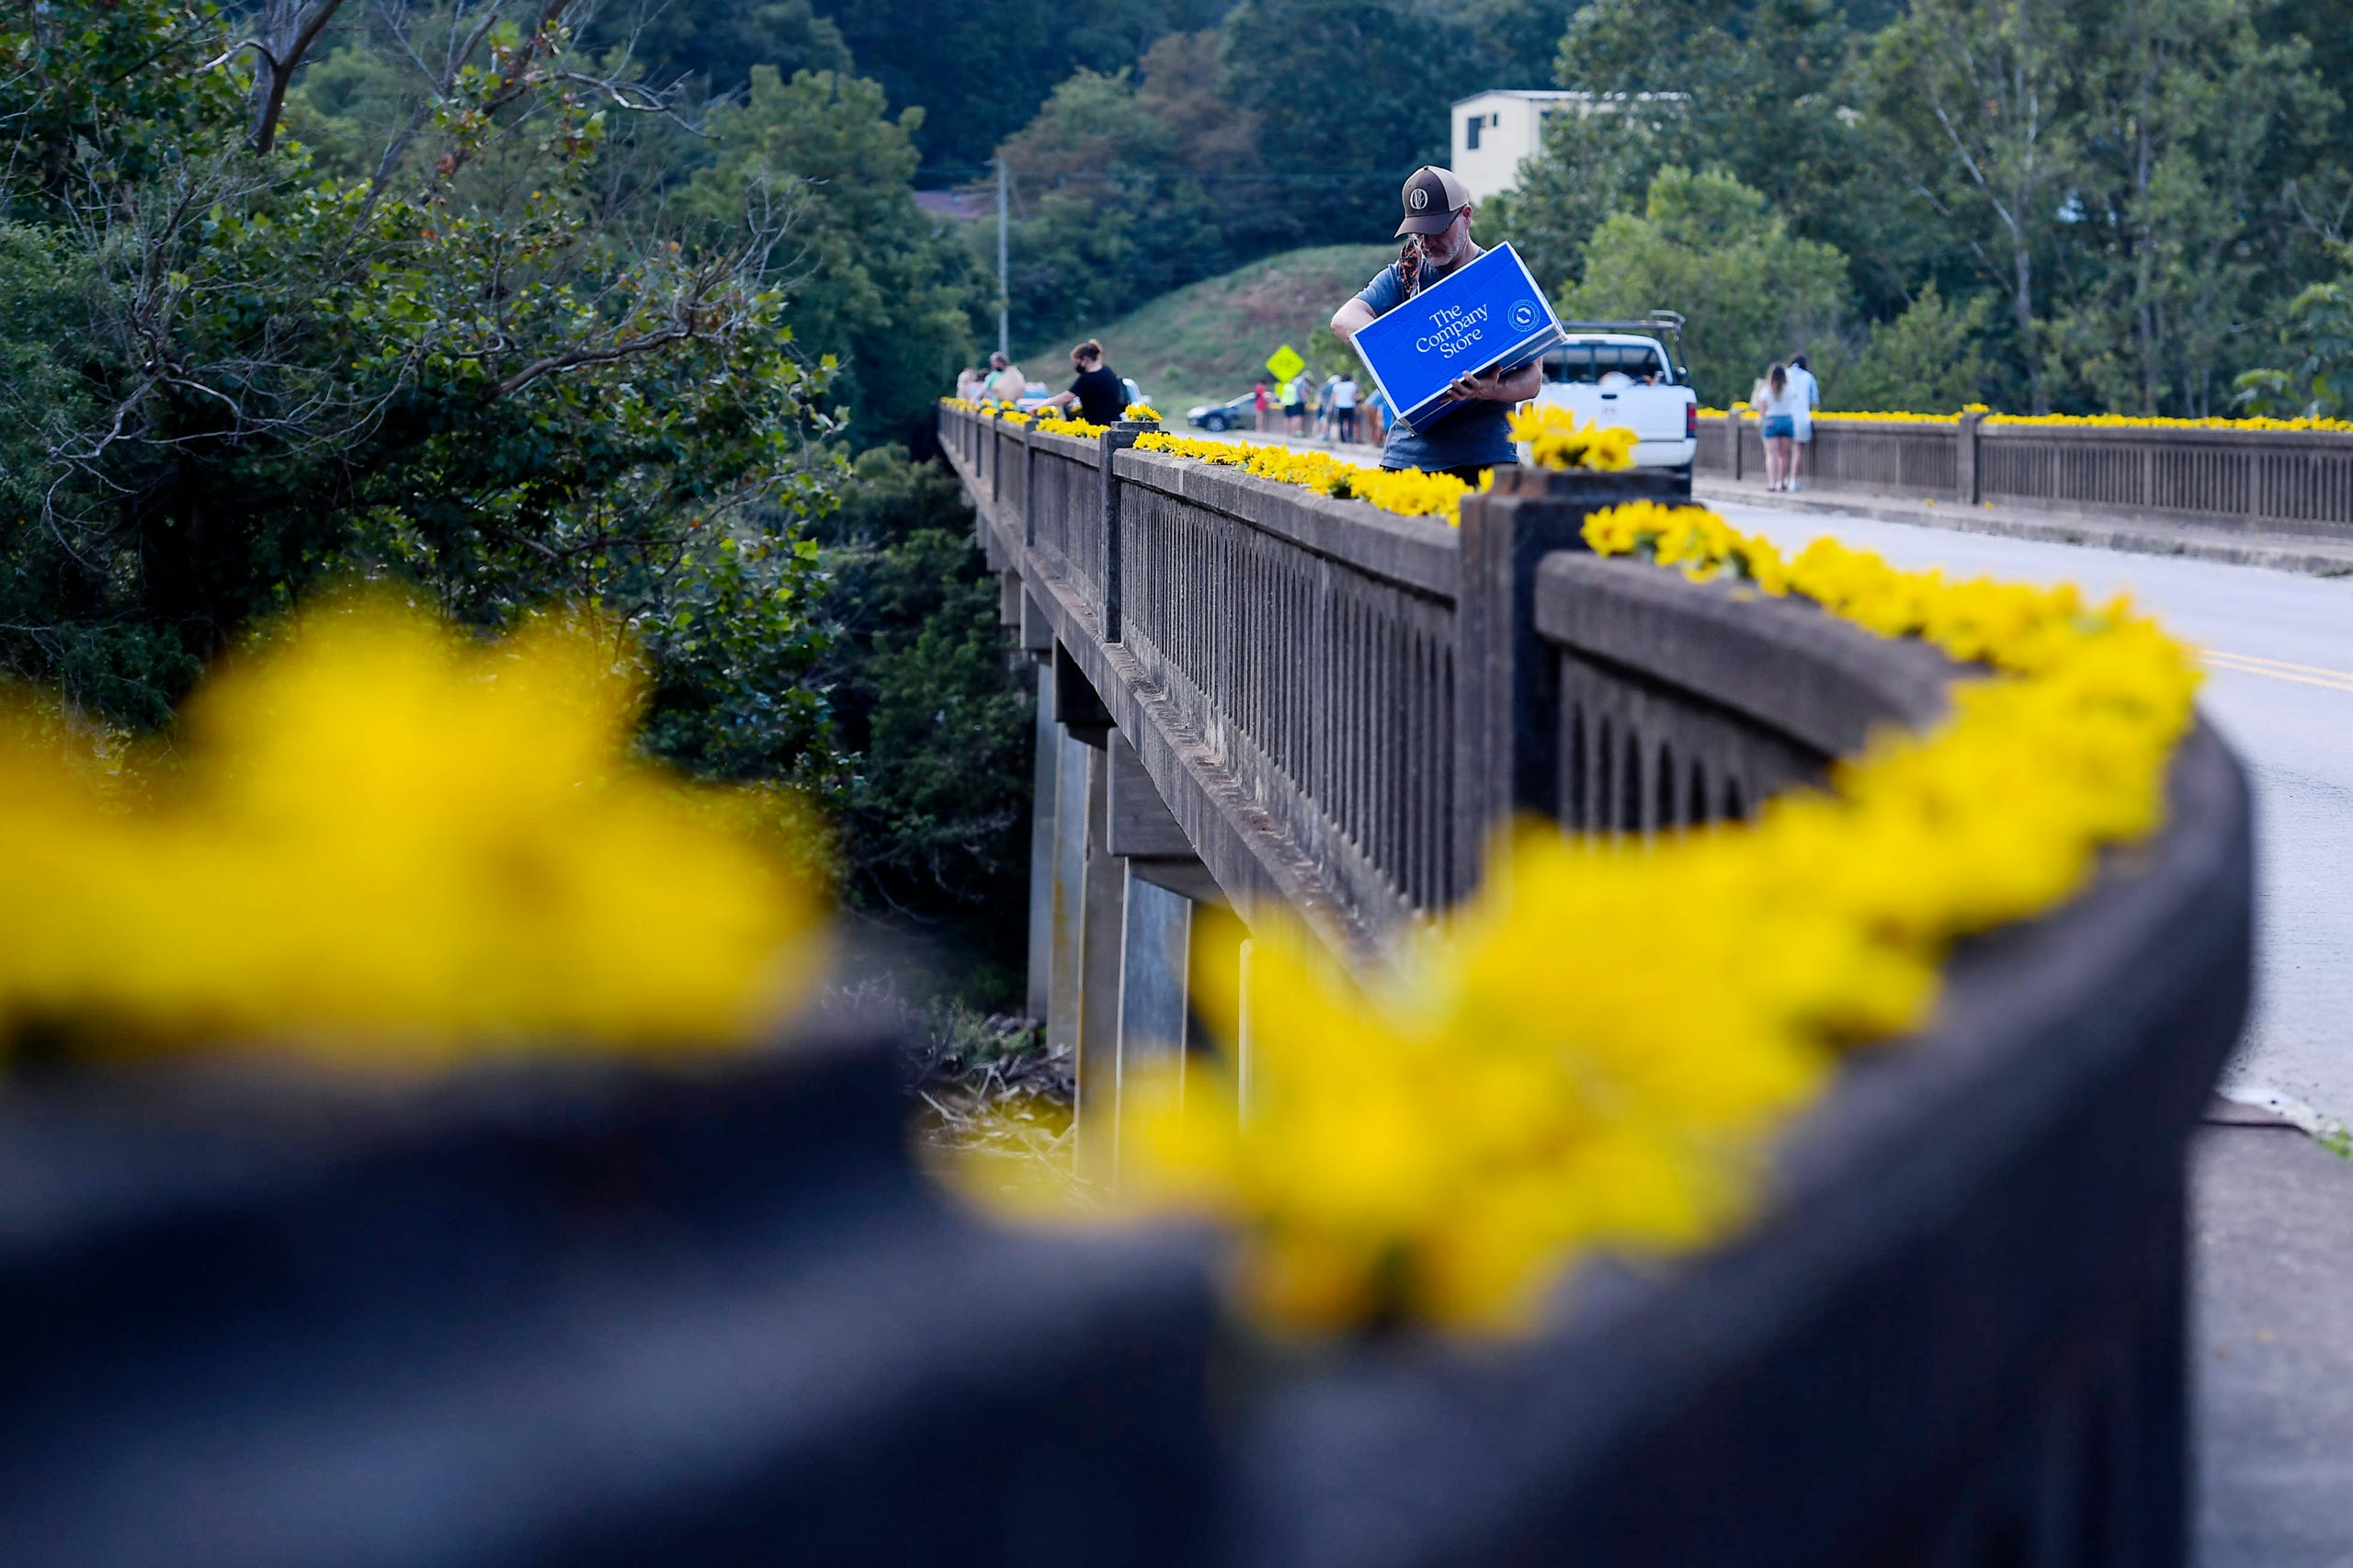 Giuseppe Ferdinandi places sunflowers from Olivette Farm across the Craggy Bridge in Woodfin August 19, 2020.